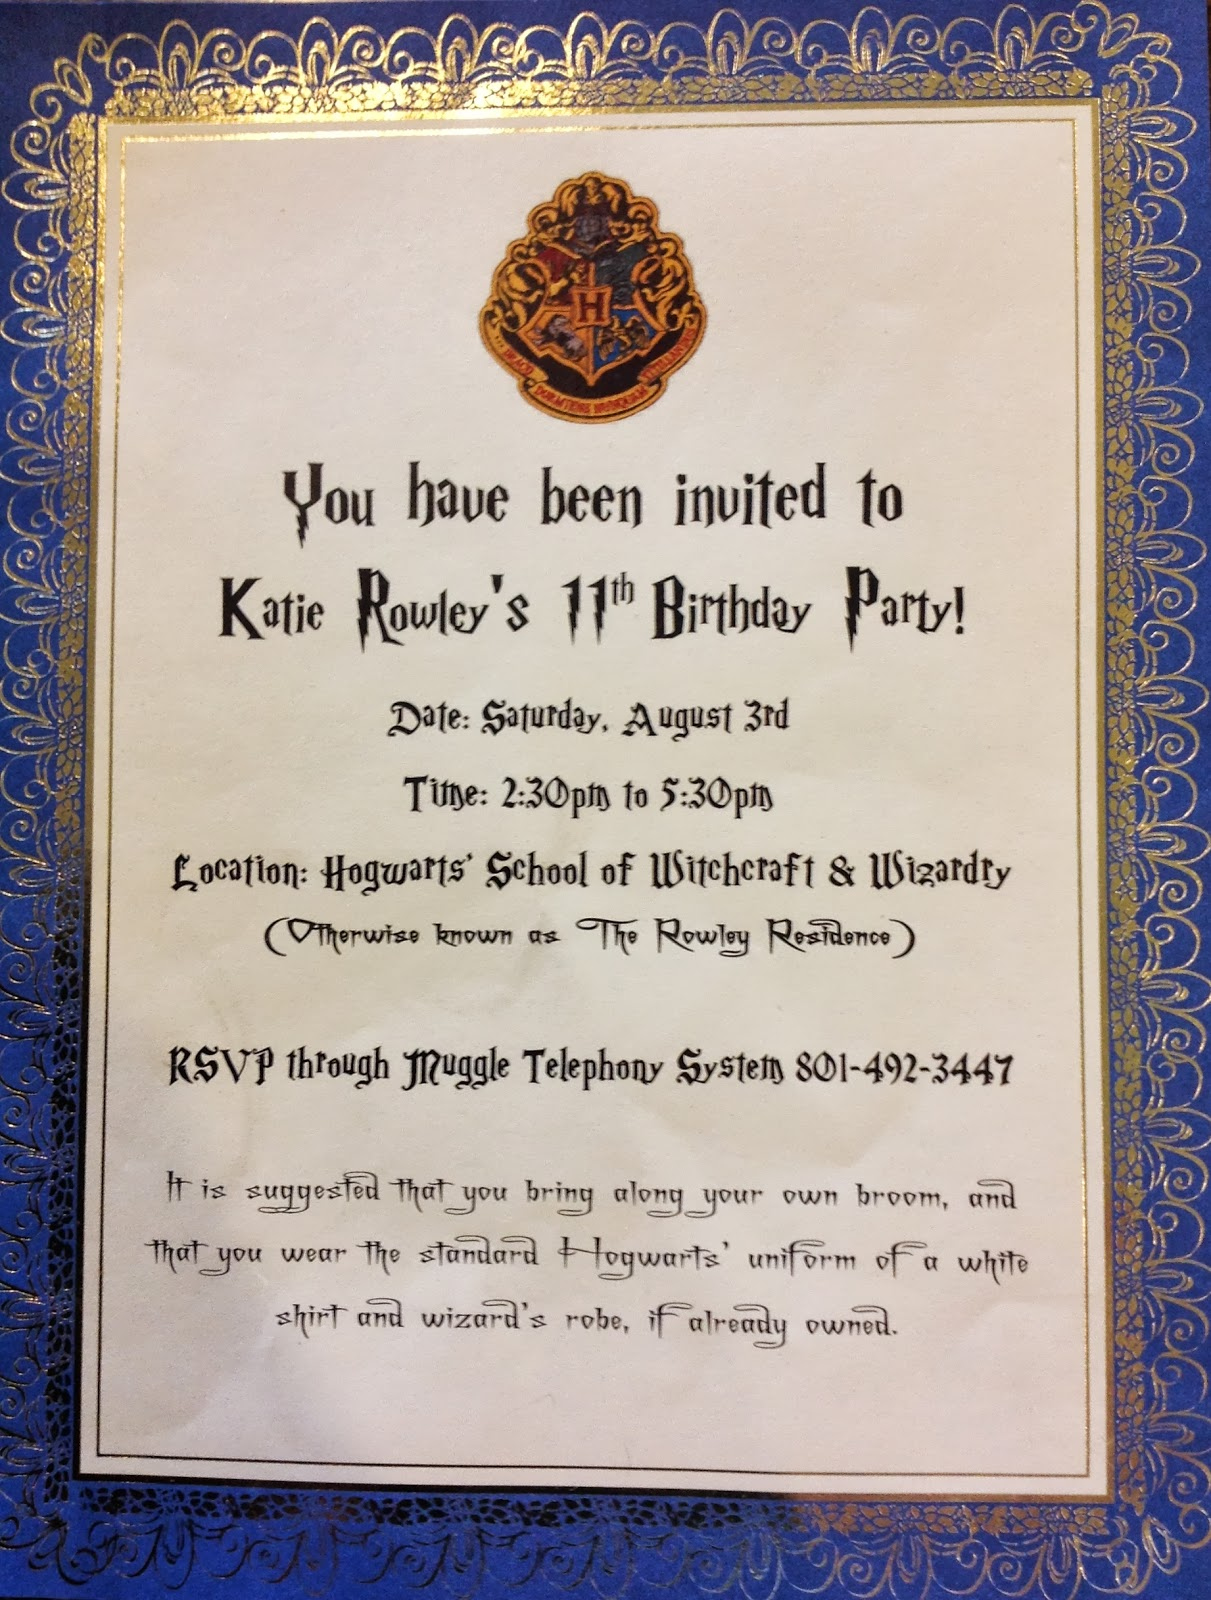 harry potter birthday invitation ideas ; harry-potter-party-invitation-ideas-party-invitation-cards-harry-potter-party-invitations